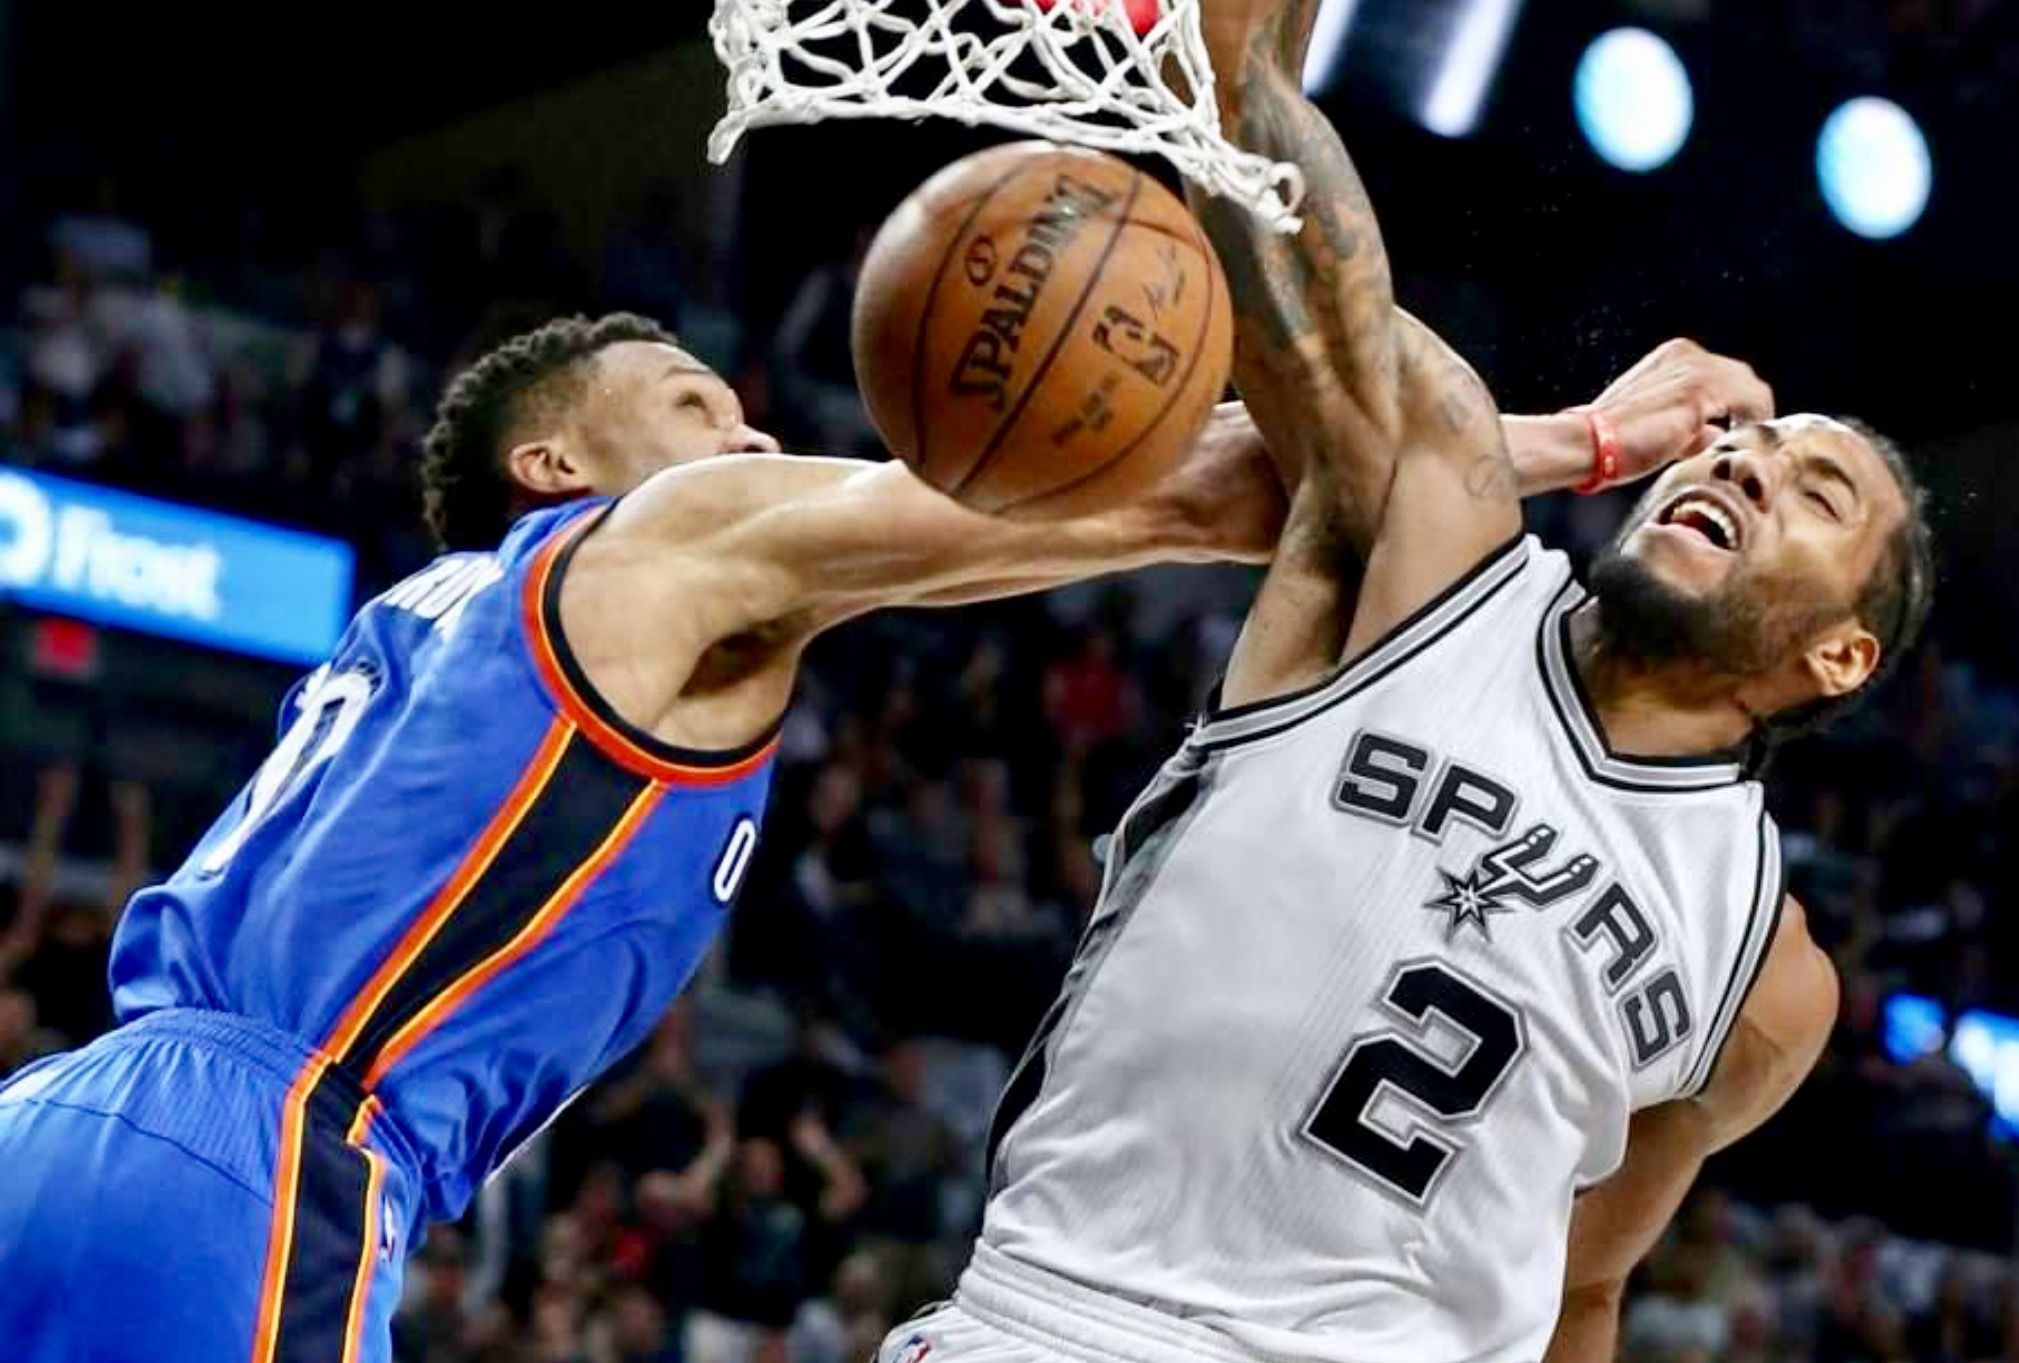 Pin by Gary Ferriss on San Antonio Spurs Nba news, Free